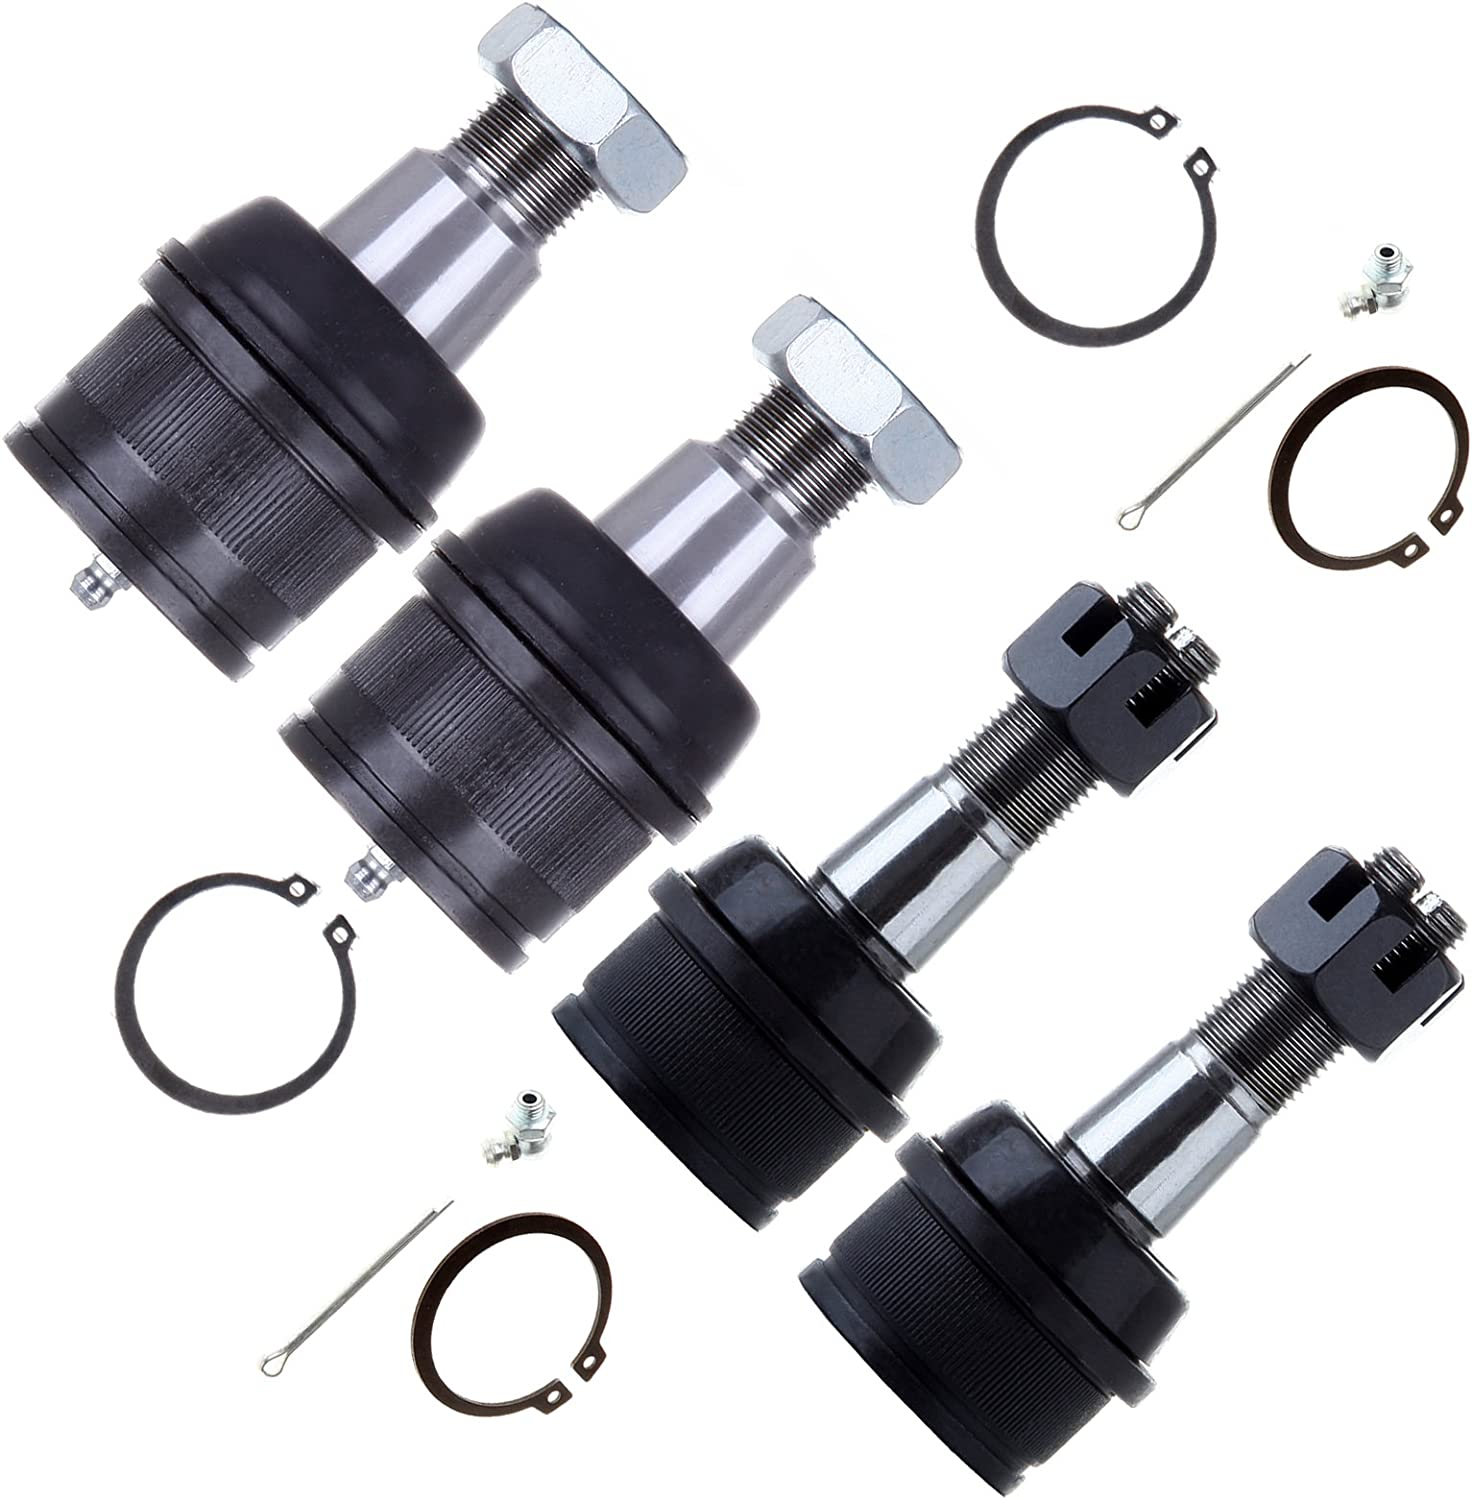 OCPTY New 3-Piece fit for 2000-2005 Ford Excursion F-250 F-350 Super Duty 4WD Models Ford F-450 F-550 Super Duty 4WD 2WD Models-2 Front Lower Ball Joints 1 Outer Tie Rod End